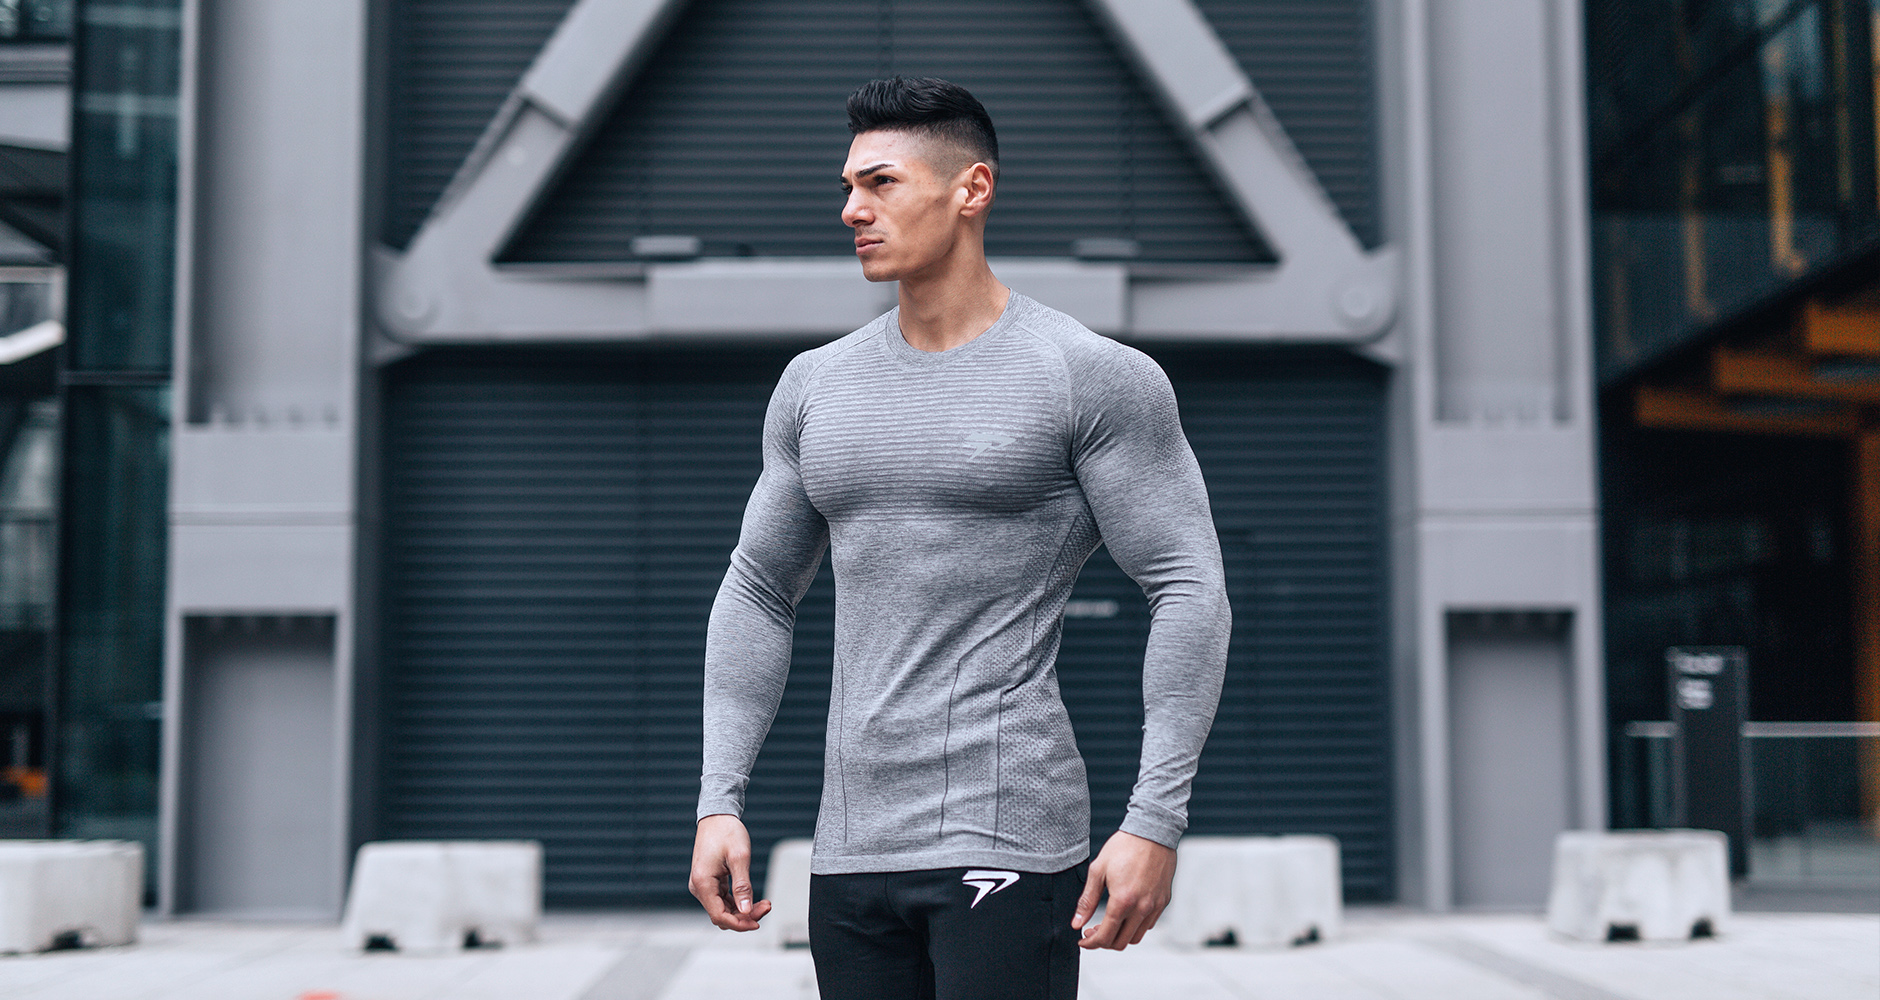 Gym, Sports and Lifestyle Clothing | Physiq Apparel